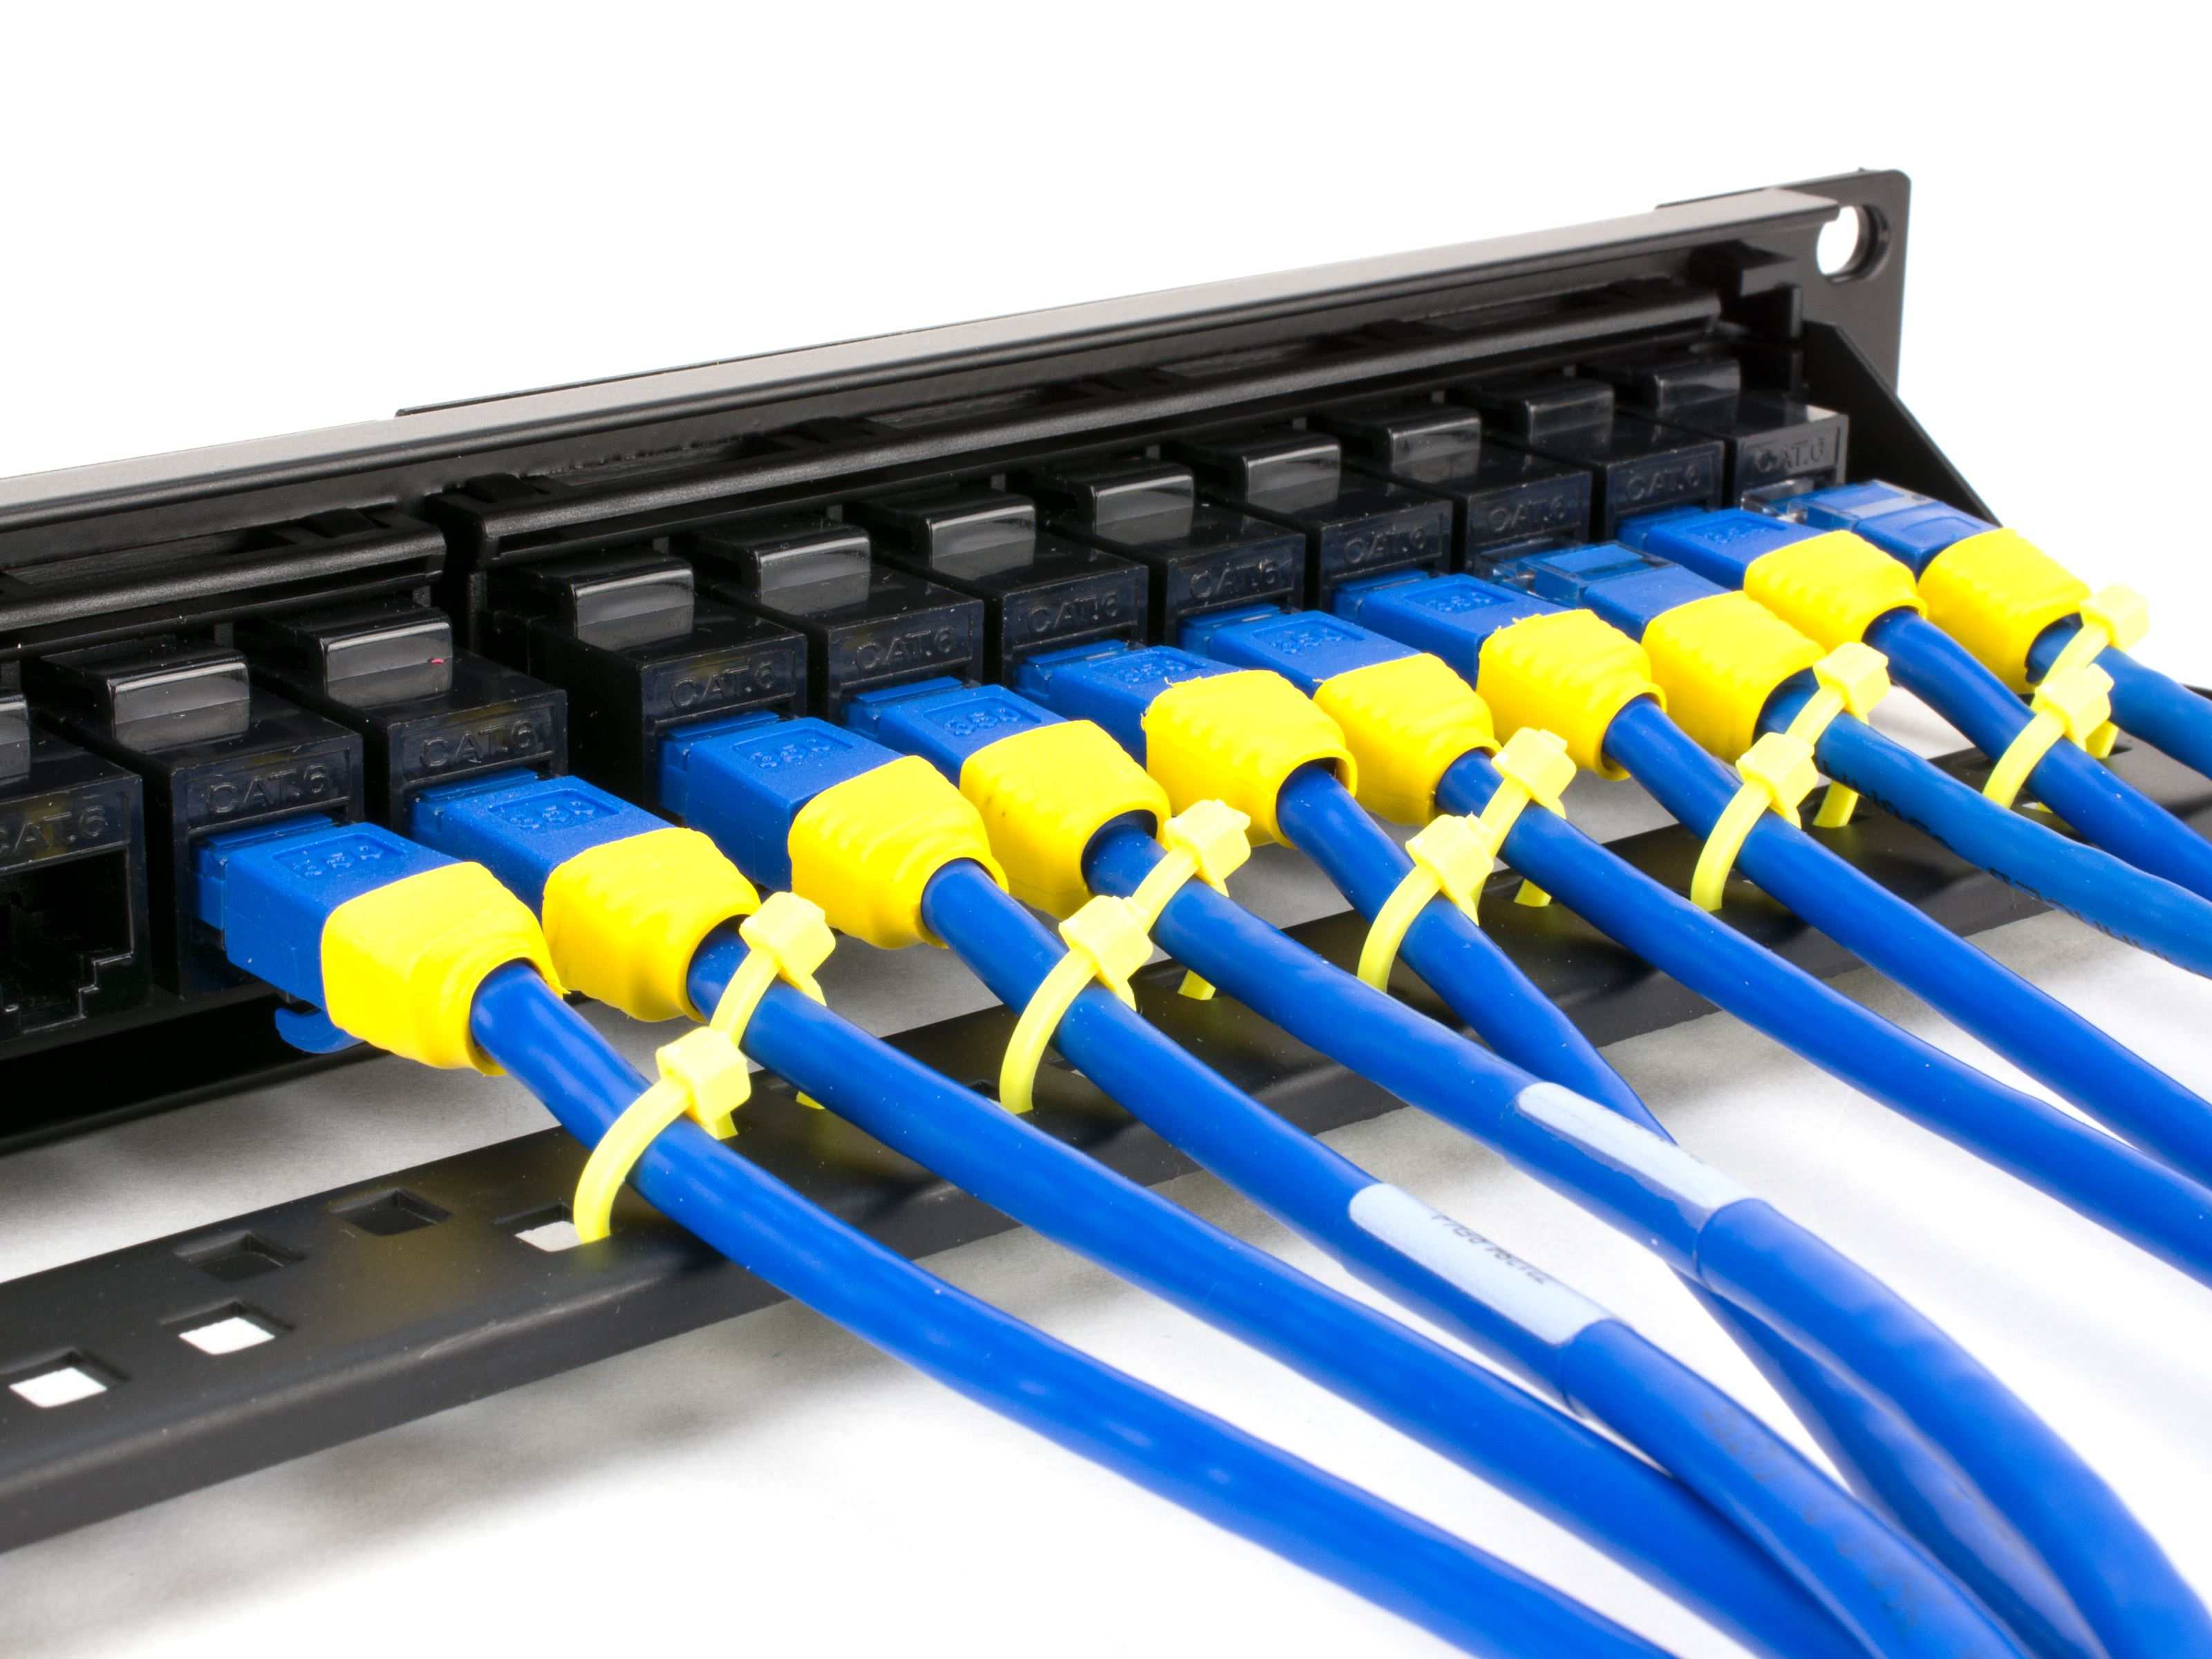 What Is The Difference Between Cat5 And Cat6 Patch Panel Best 3ft Cat5e Ethernet Cable Firefold Trend 8 Port Unshielded Rackmount 10 Inch Wide